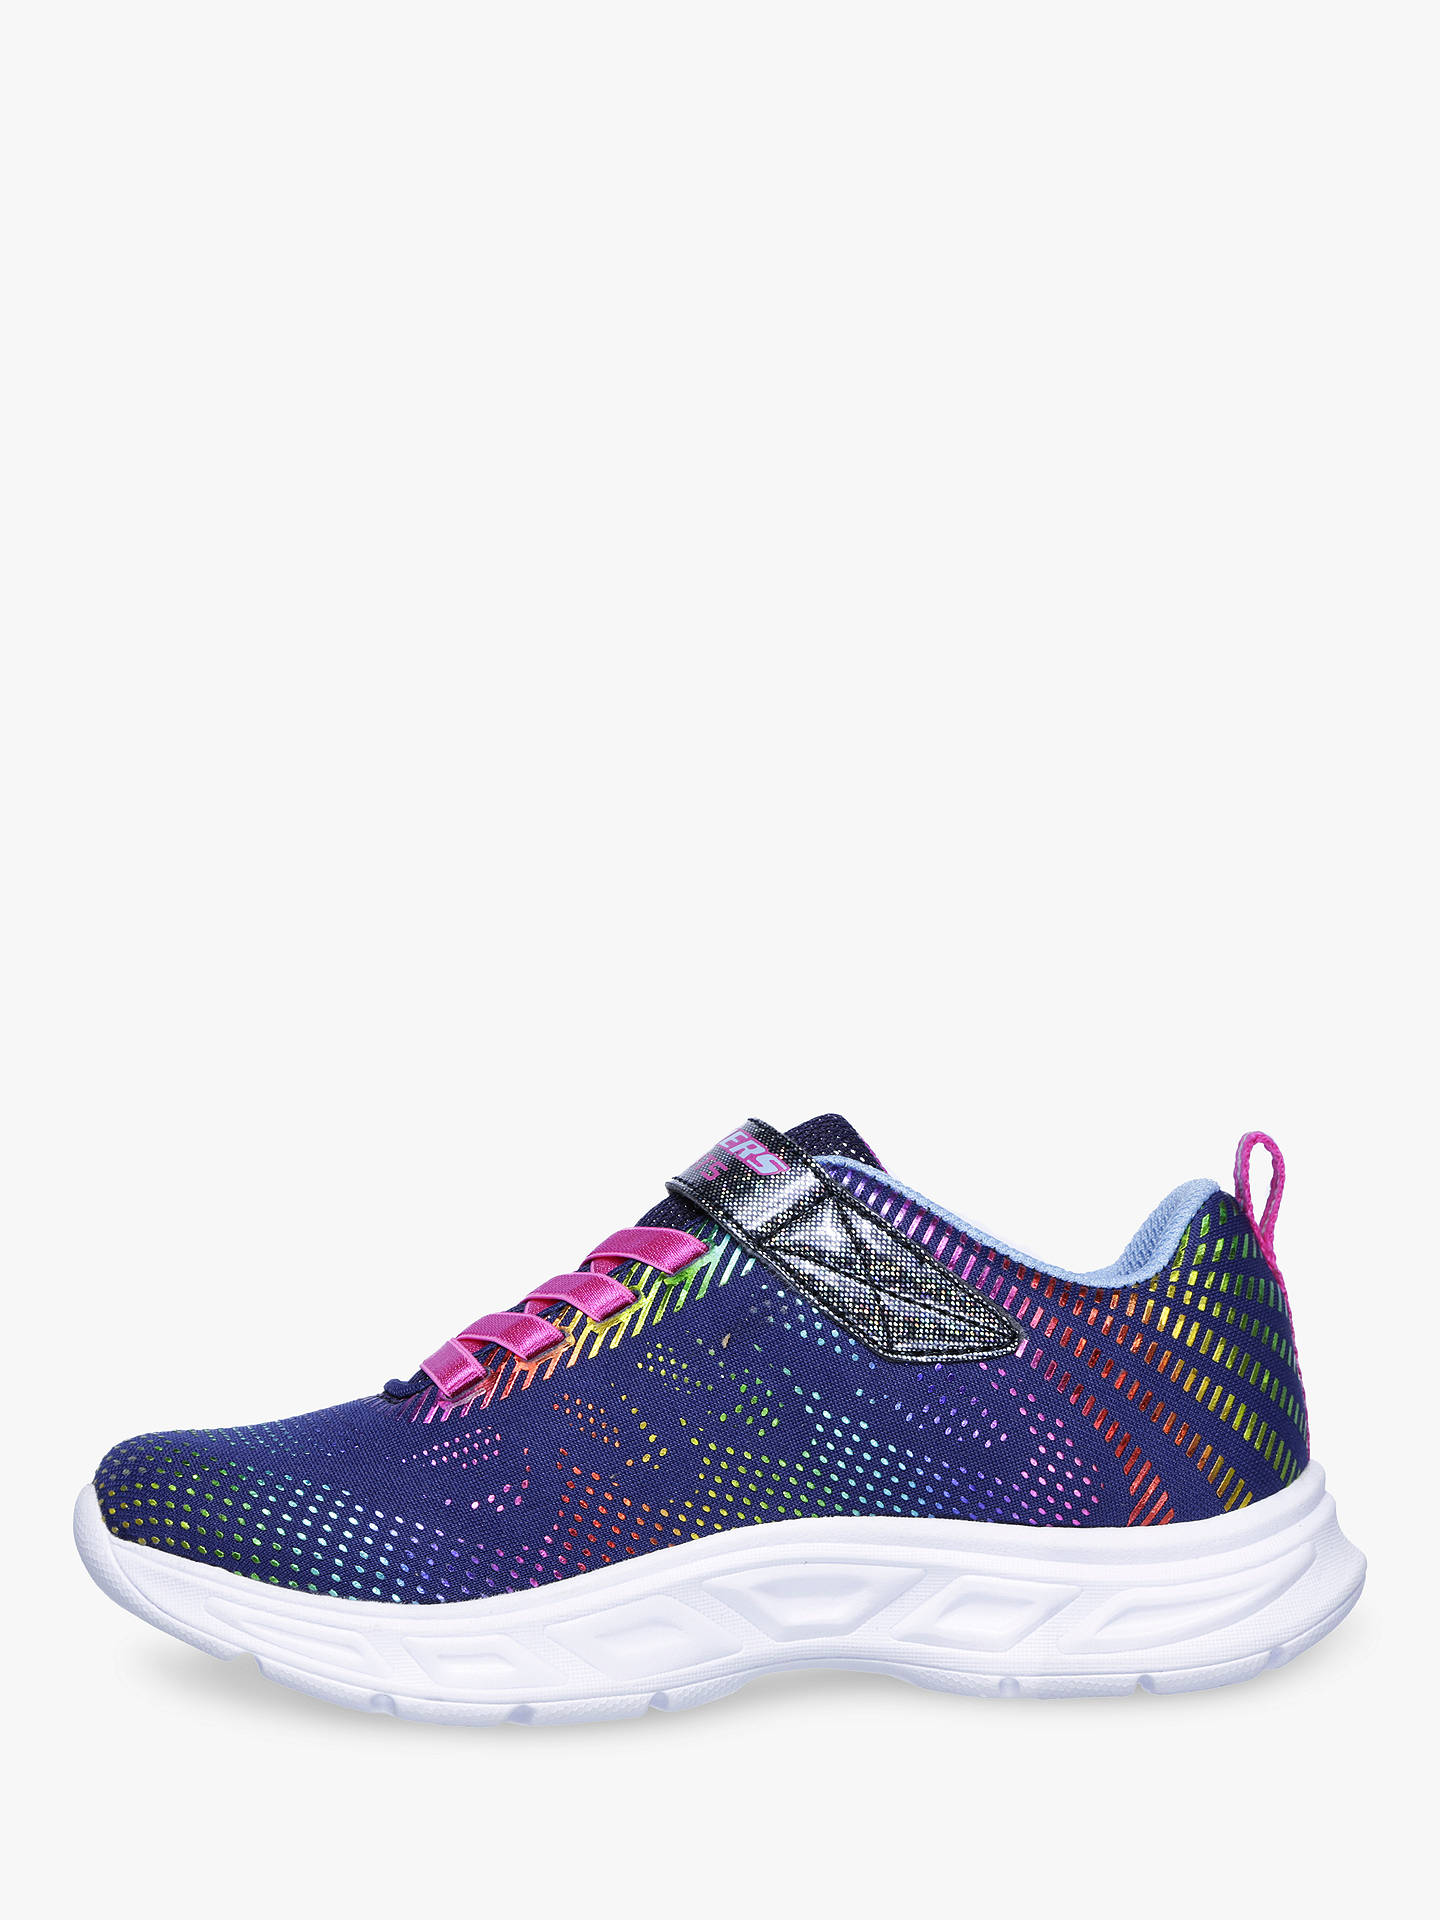 BuySkechers Children's S-Lights Lite Beams Gleam N' Dream Trainers, Purple, 28 Online at johnlewis.com